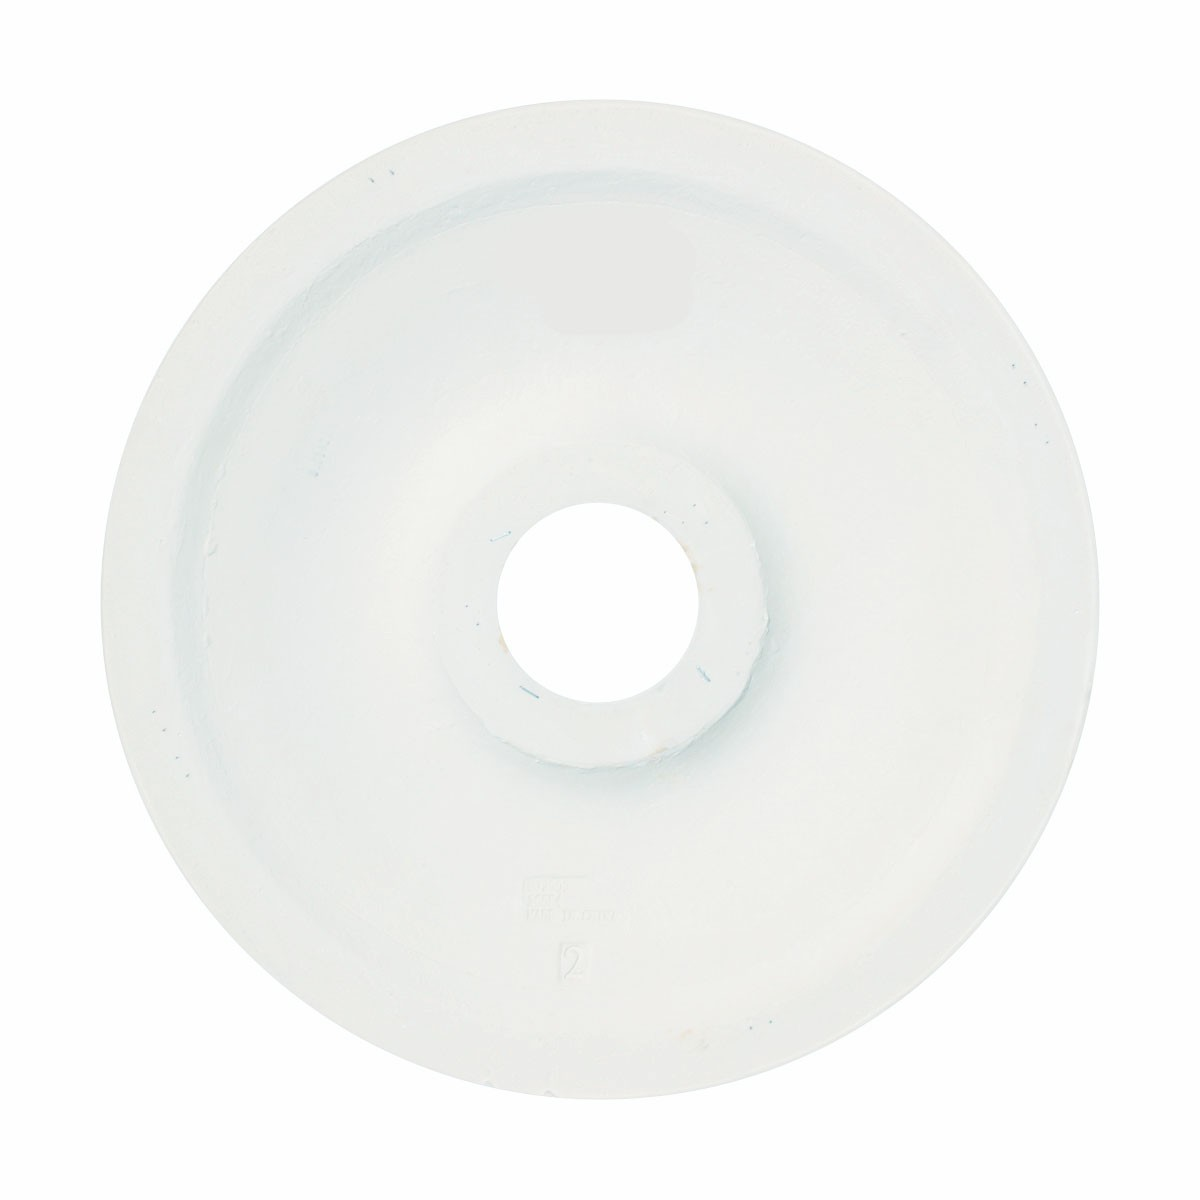 Ceiling Medallion White Urethane 20 Diameter Light Medallion Light Medallions Lighting Medallion